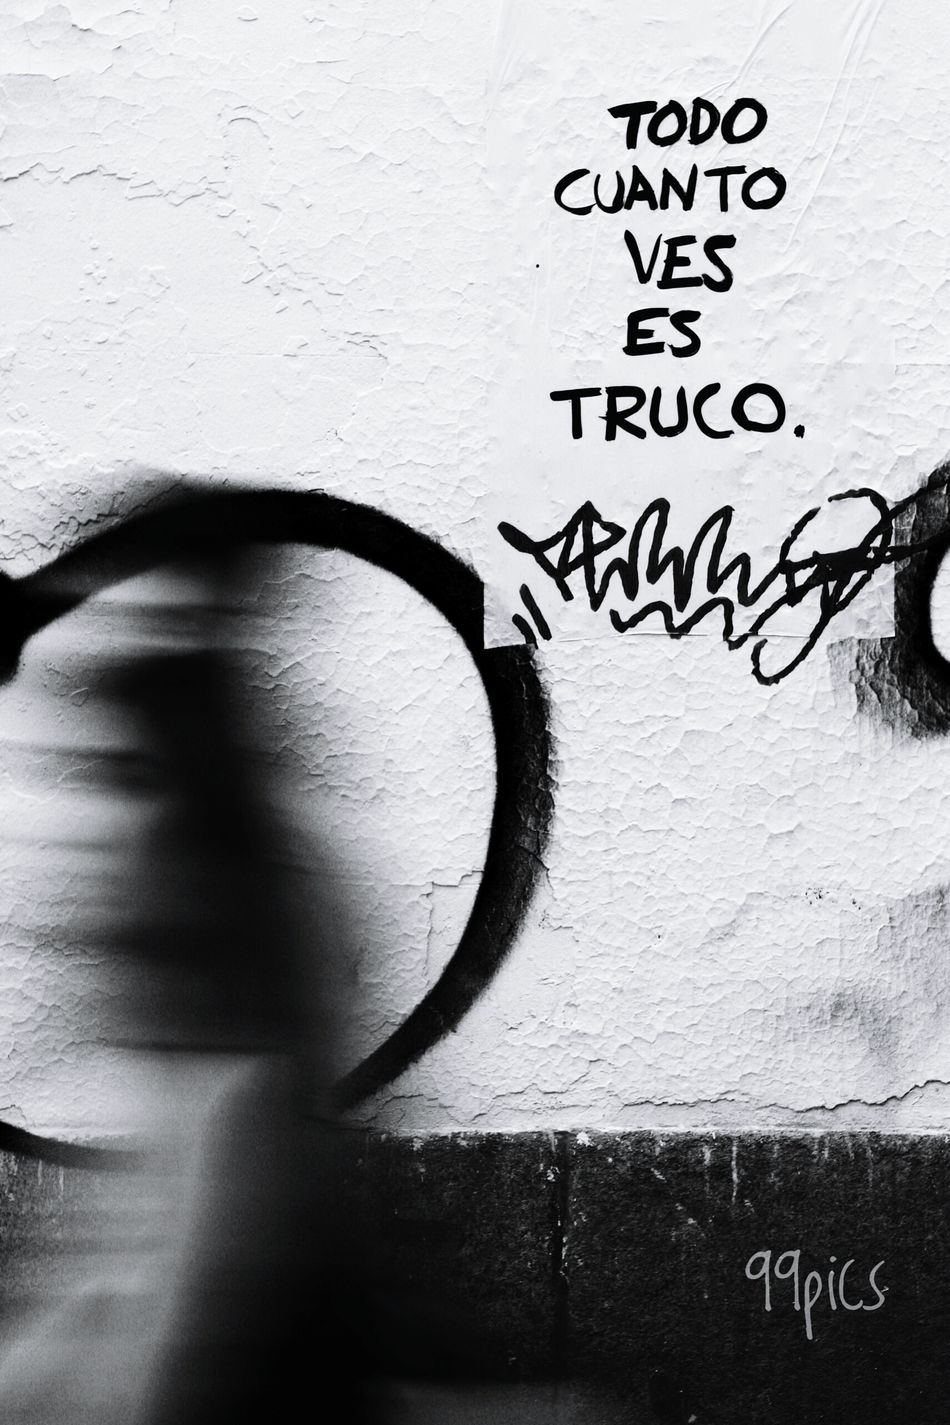 Trato o truco. Text Communication Day Shadows & Lights One Person Blackandwhite Photography Human Body Part Black And White Blackandwhite Light - Natural Phenomenon Shadow And Light From My Point Of View Body Shot Madrid Spain Silouette And Shadows